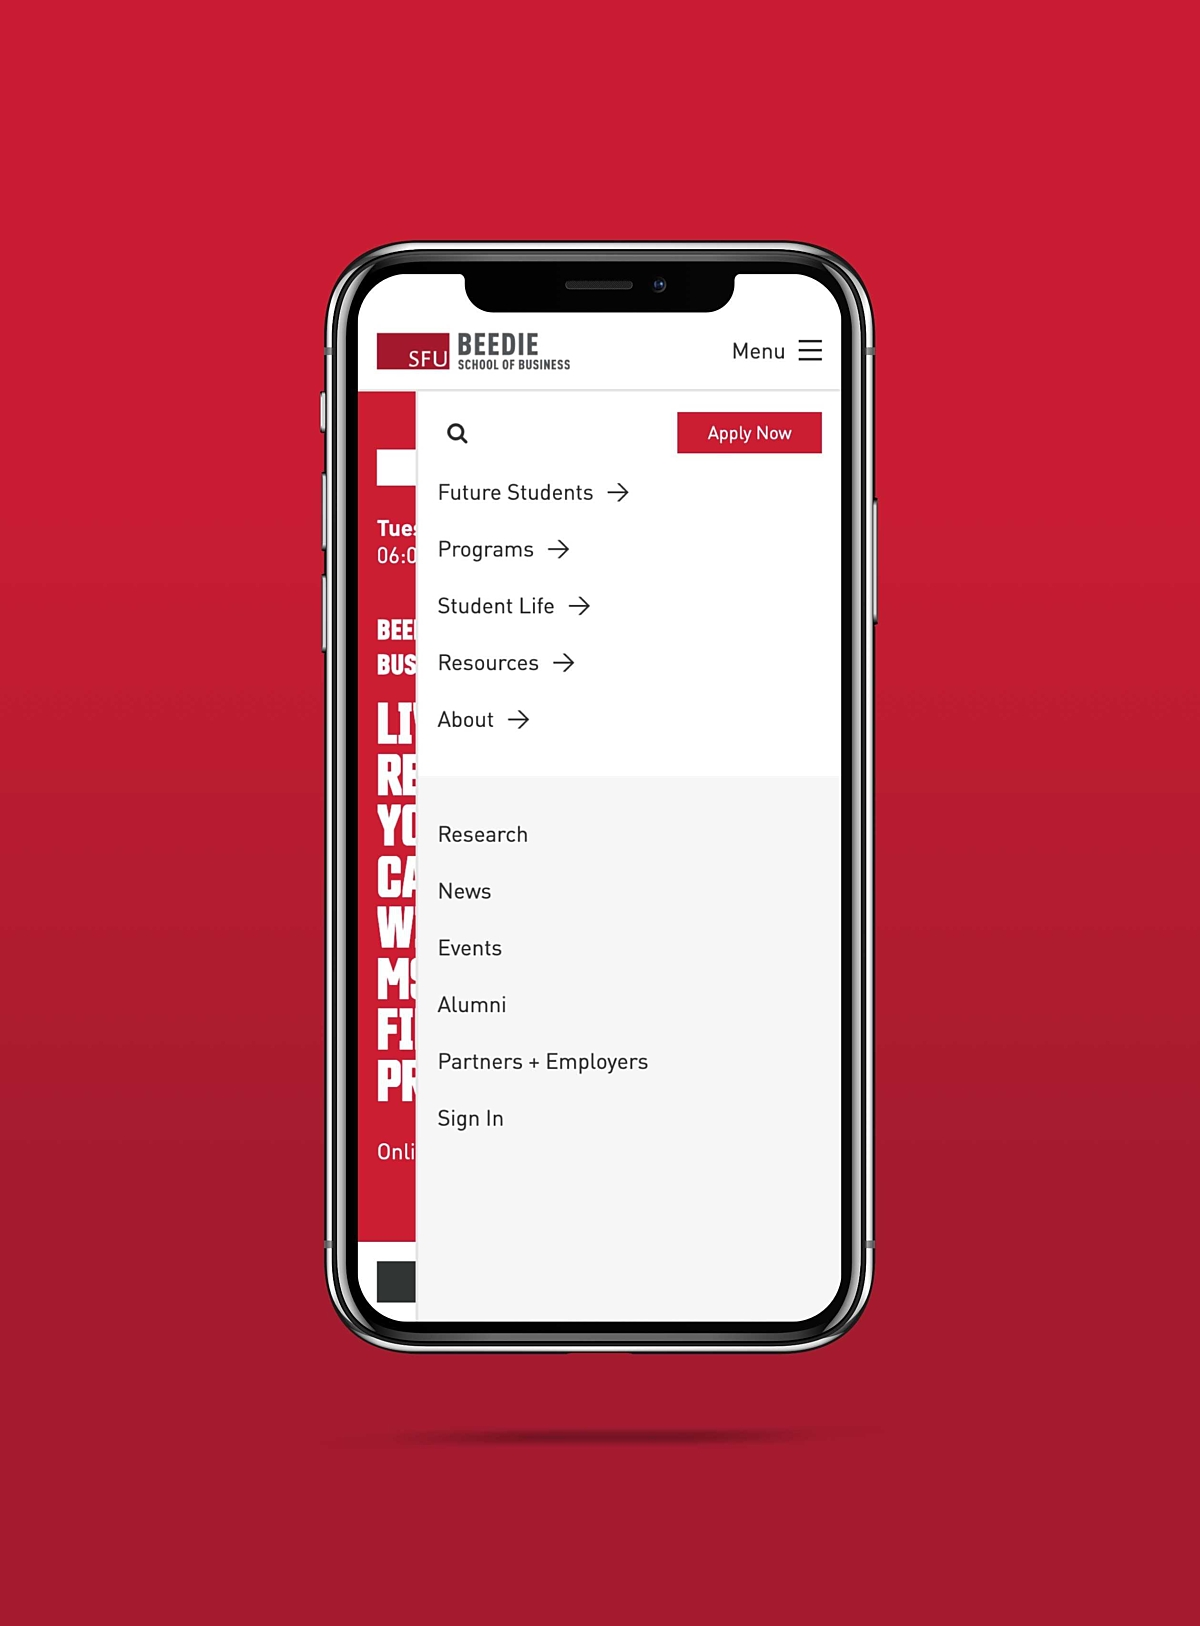 SFU Beedie mobile menu example on iPhone X